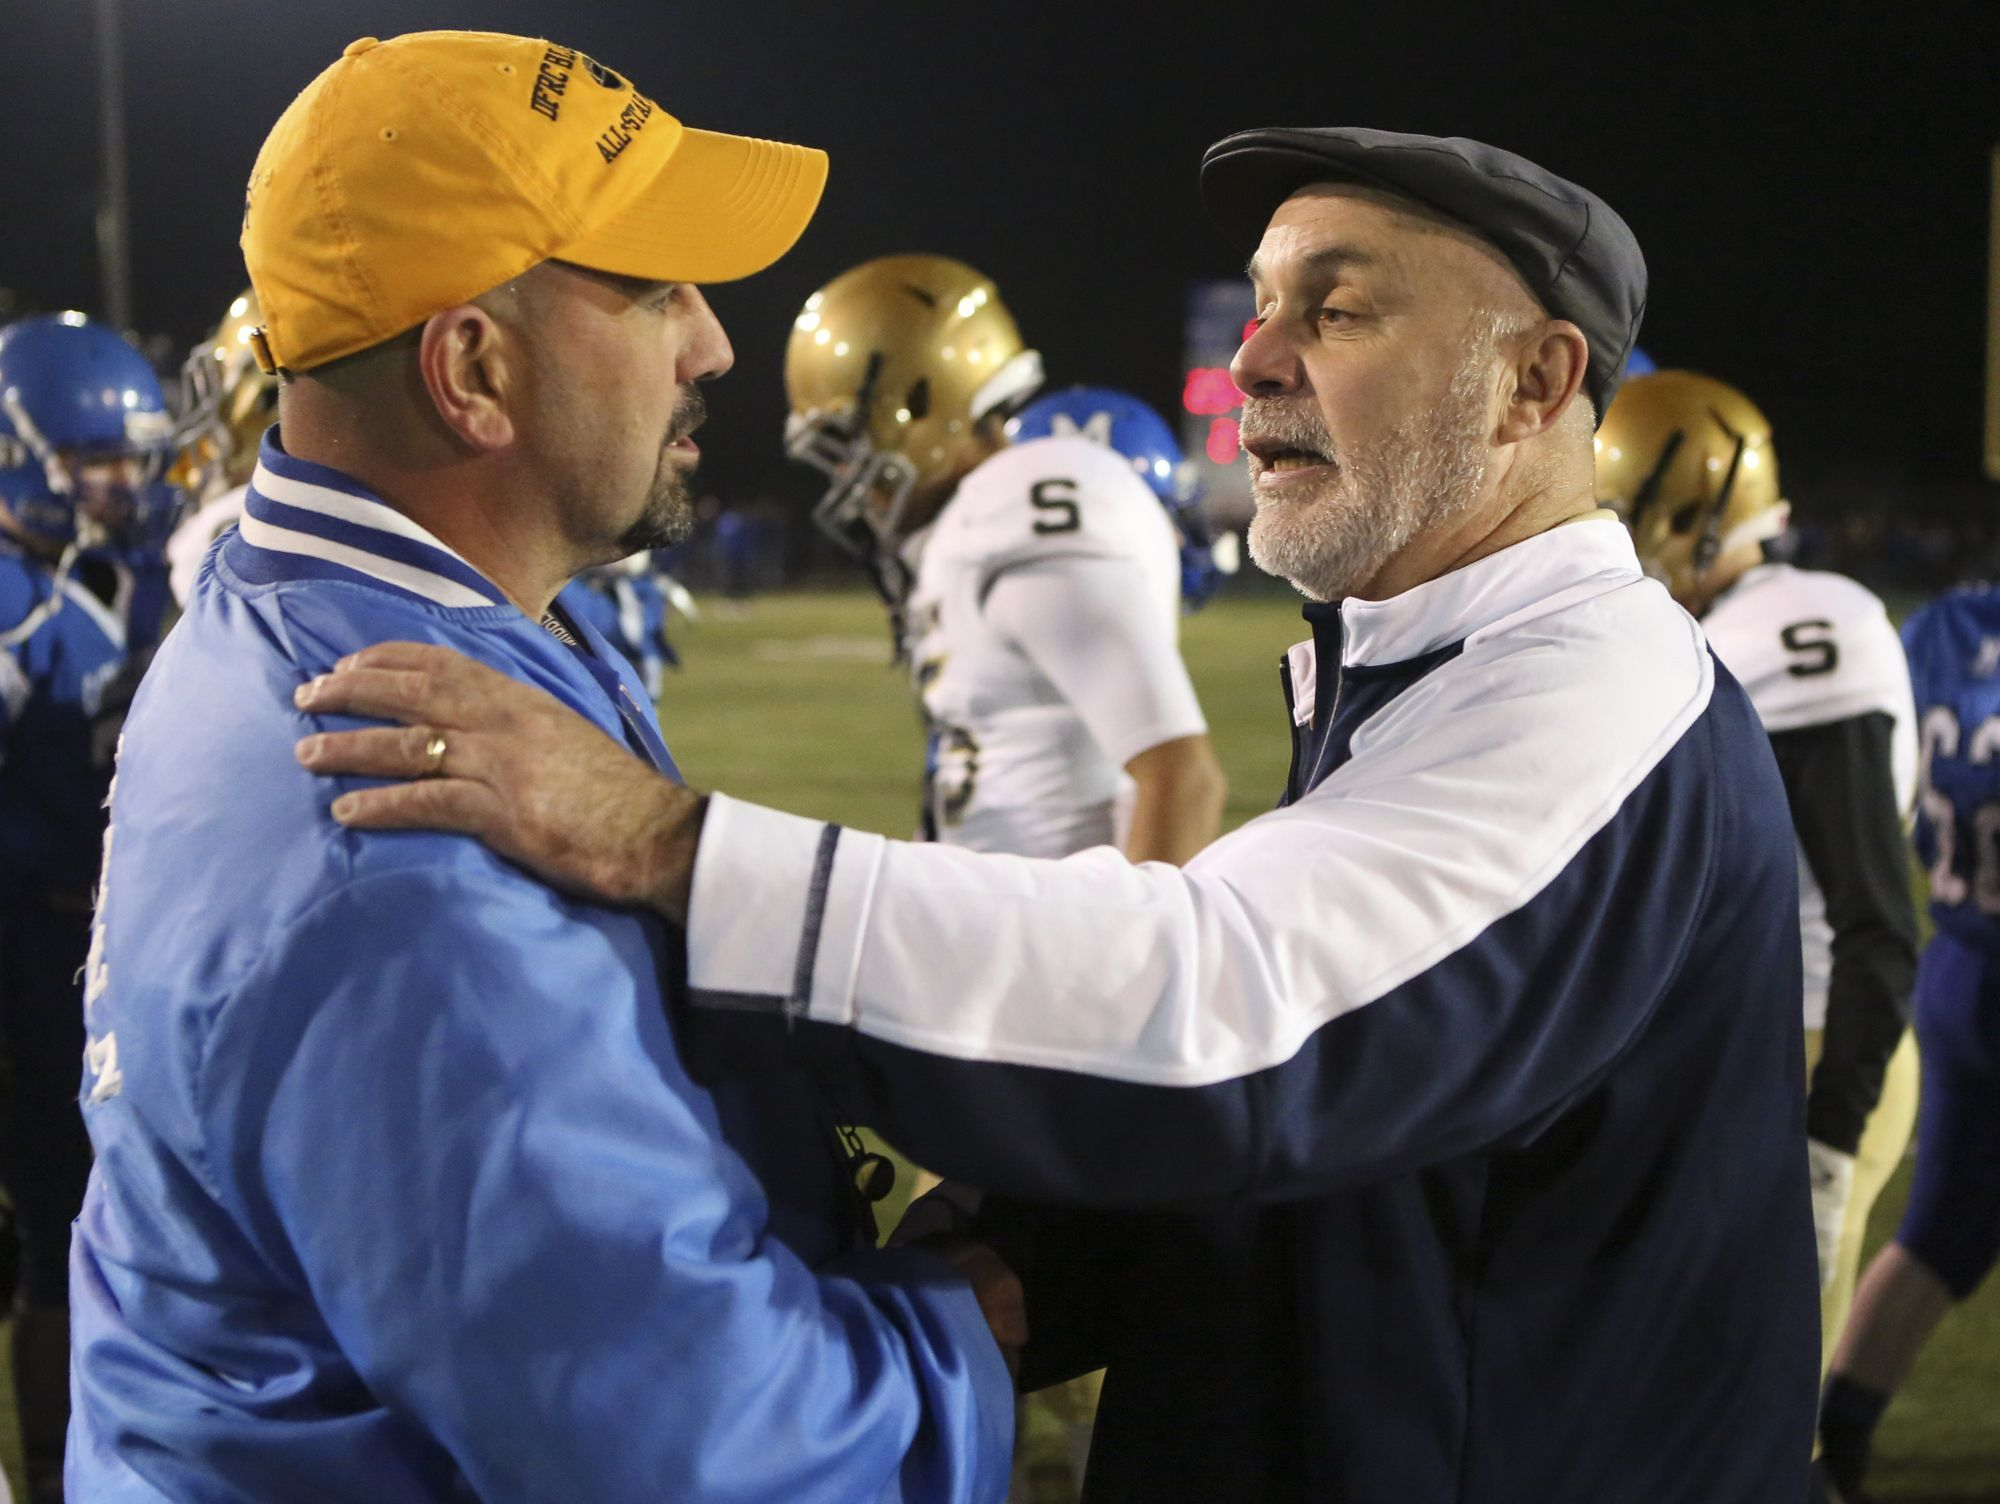 Salesianum coach Bill DiNardo (right) confirmed Wednesday that Middletown coach Mark DelPercio (left) plans to leave the Cavaliers to coach high school football in Texas.